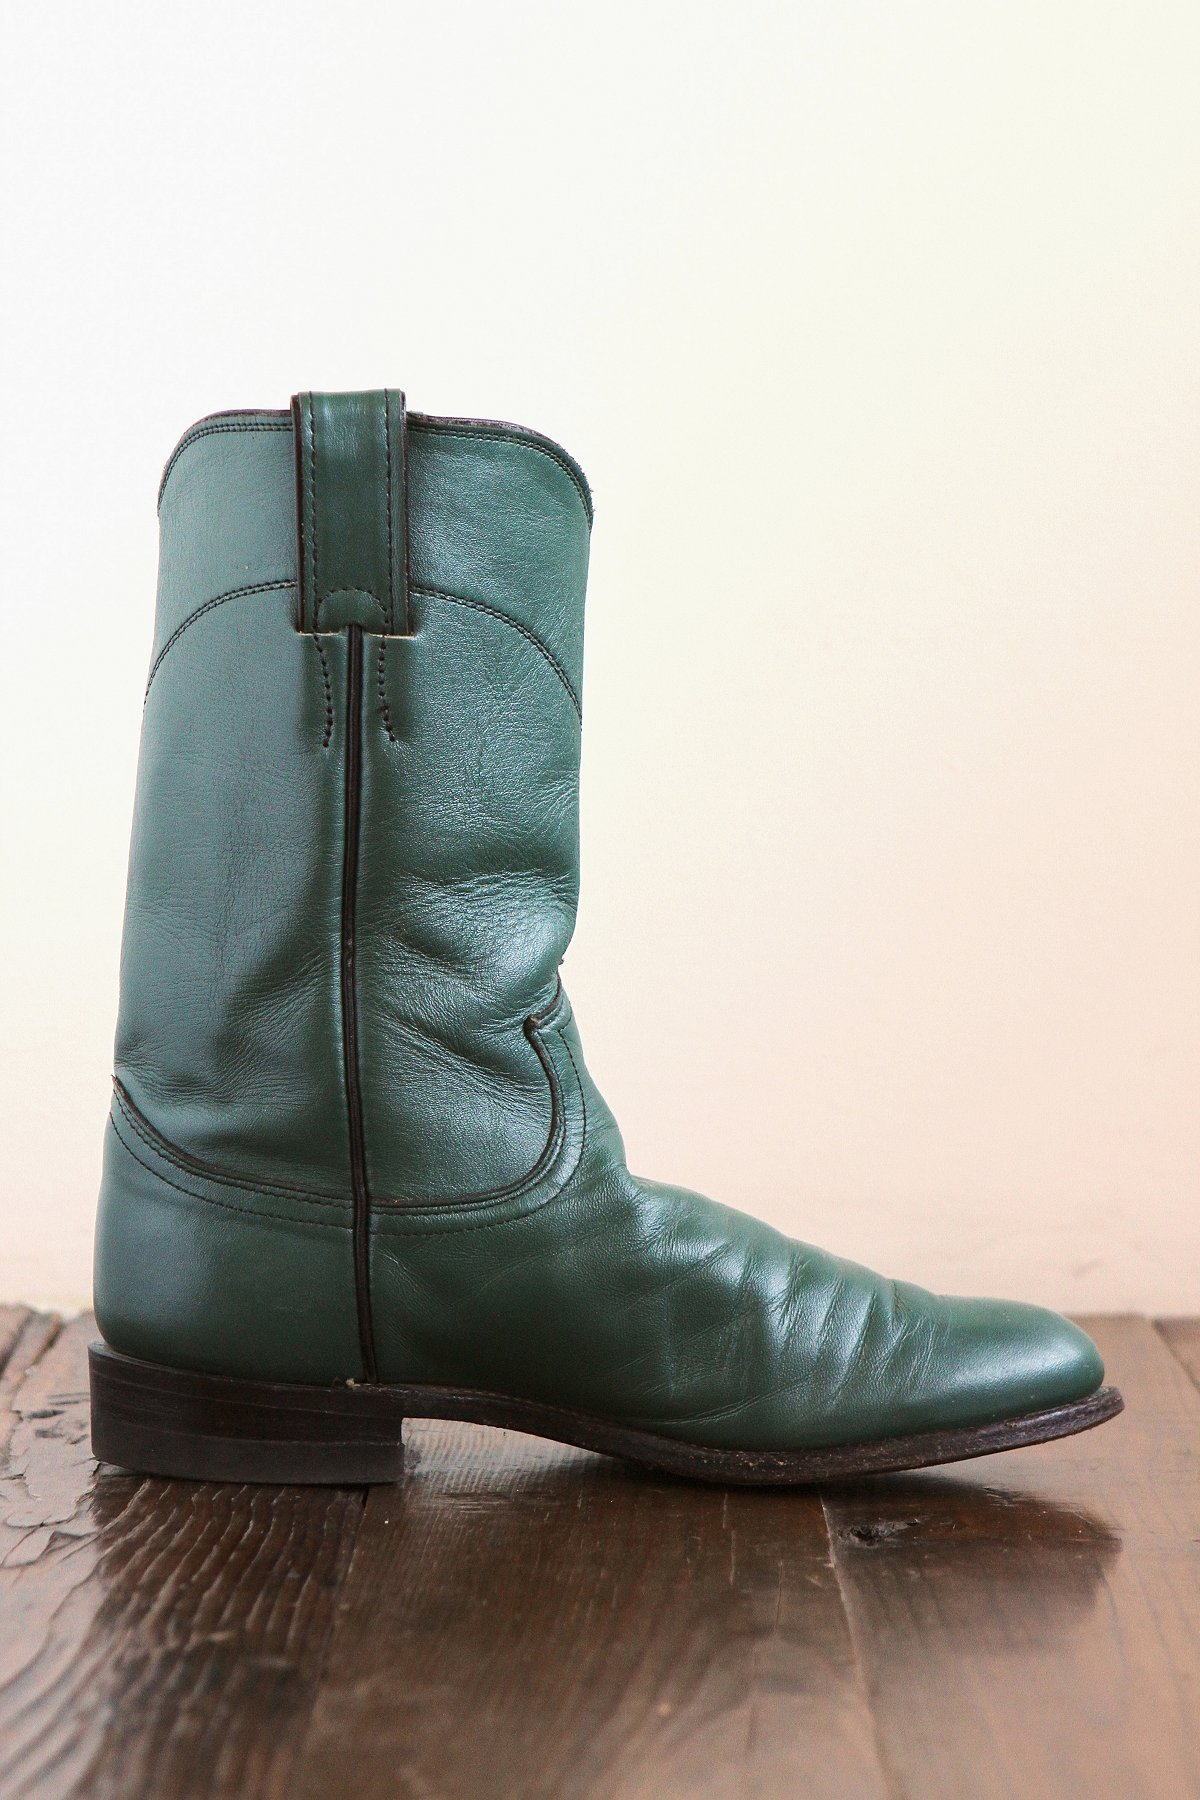 Vintage Green Leather Cowboy Boots